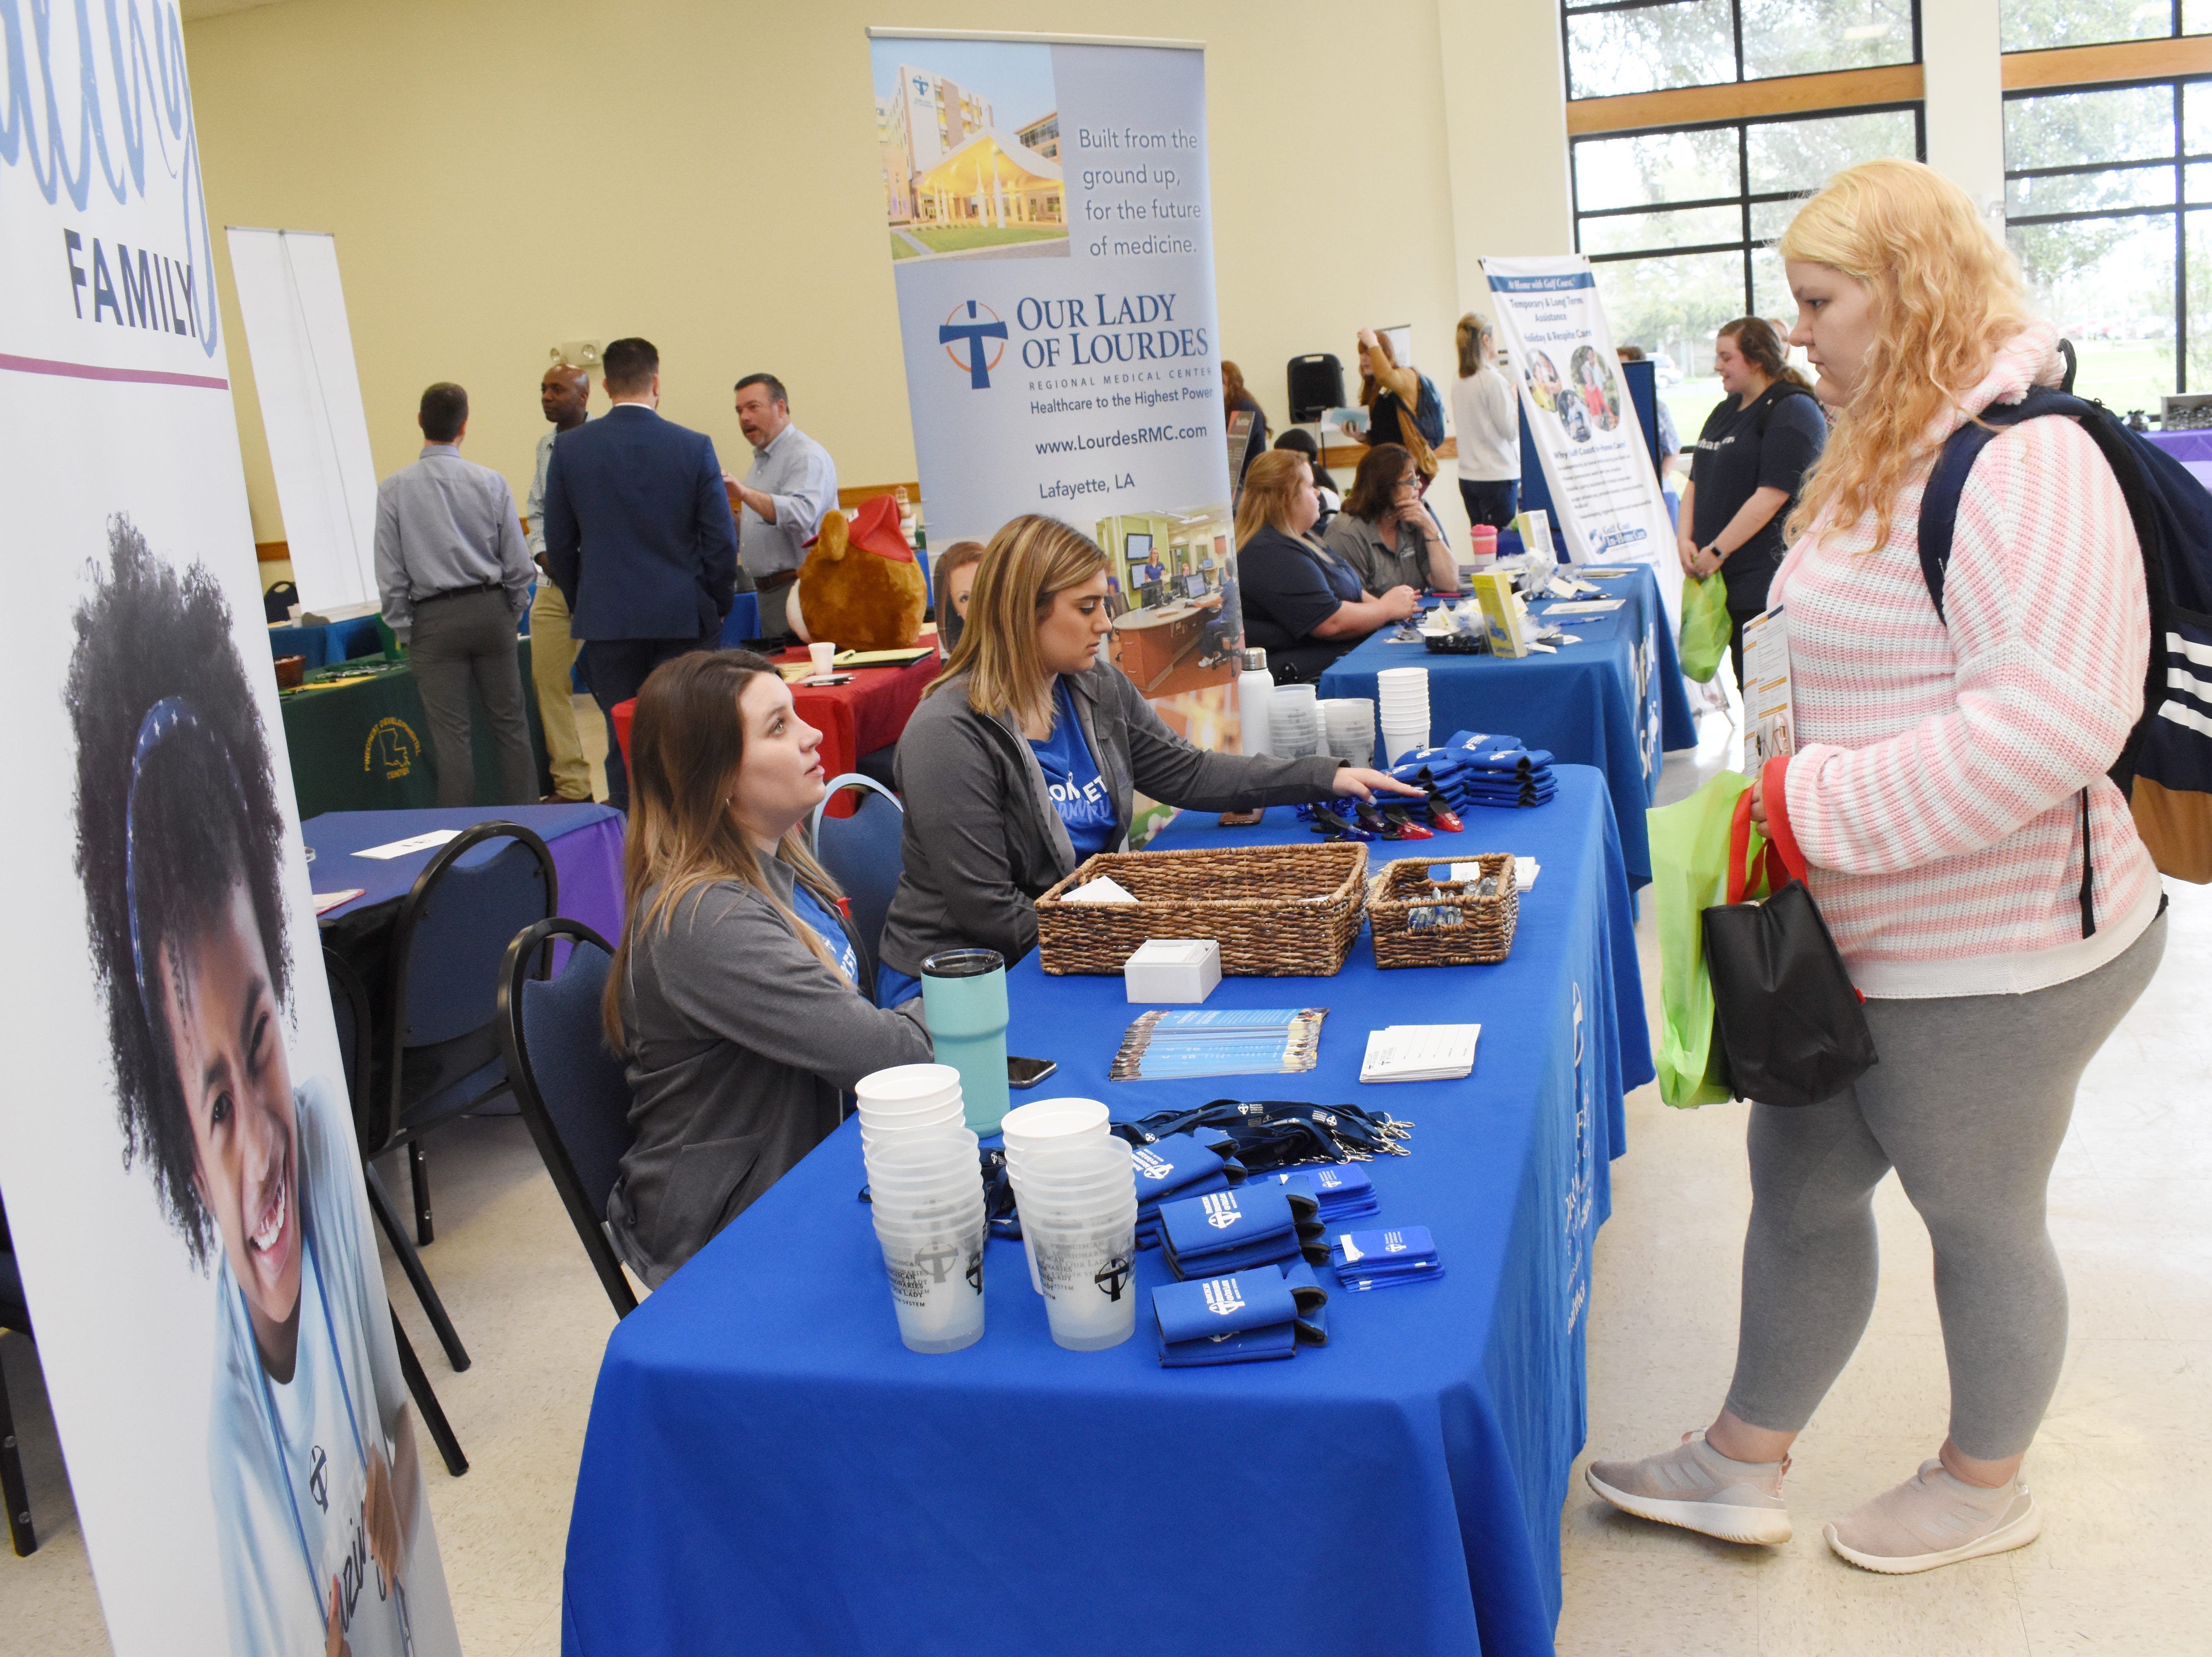 Haley Dixon (far left) and Sarah Gonzales, both with Our Lady of Lourdes Regional Medical Center in Lafayette, talk to LSUA senior psychology manger Morgan Merrell (right) at the Spring Career Fair held Tuesday, March 12, 2019 on the LSUA campus. About 40 businesses such as those involved in education, health care, non-profits and law enforcement were on hand to talk to students and others about job opportunities.